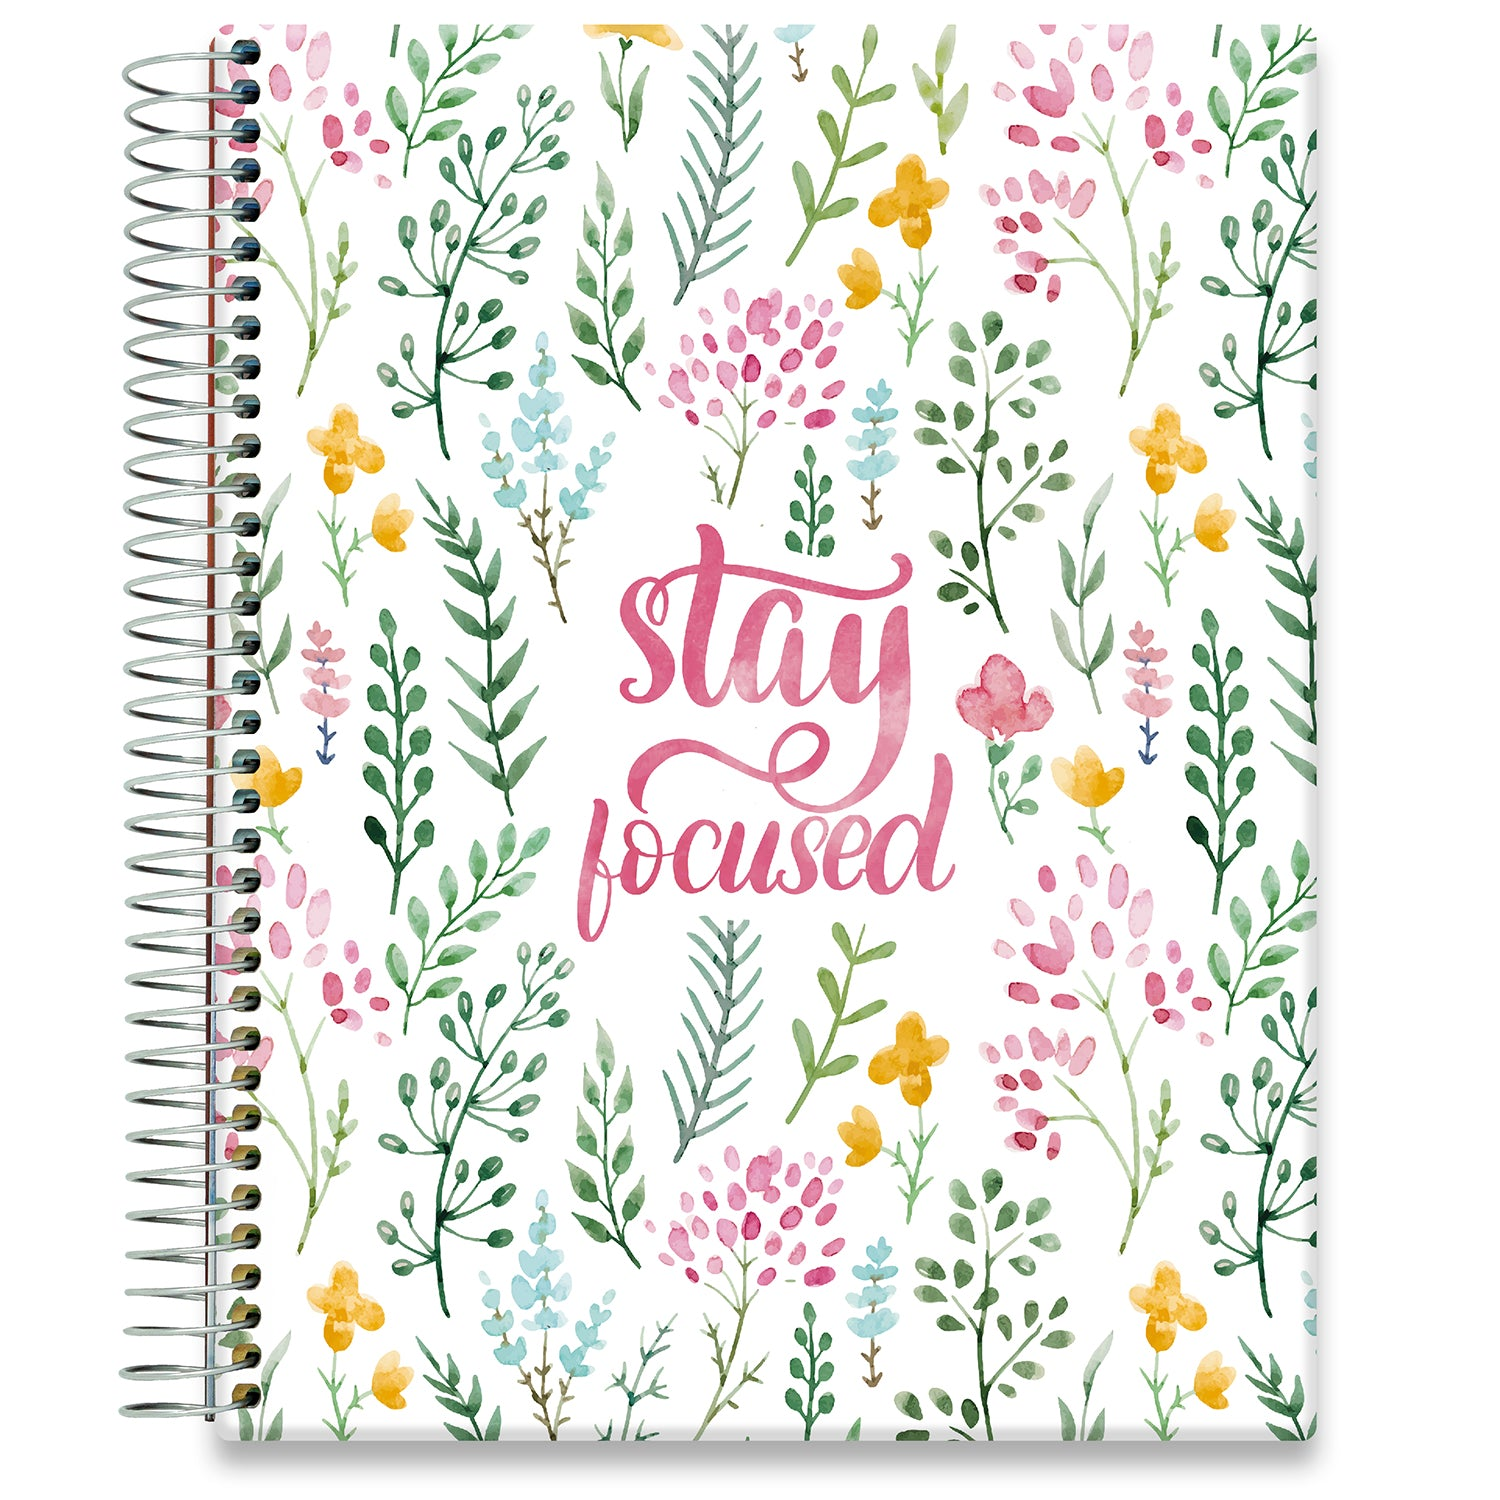 Planner 2021-2022 • April 2021 to June 2022 Academic Year • 8.5x11 Hardcover • Stay Focused